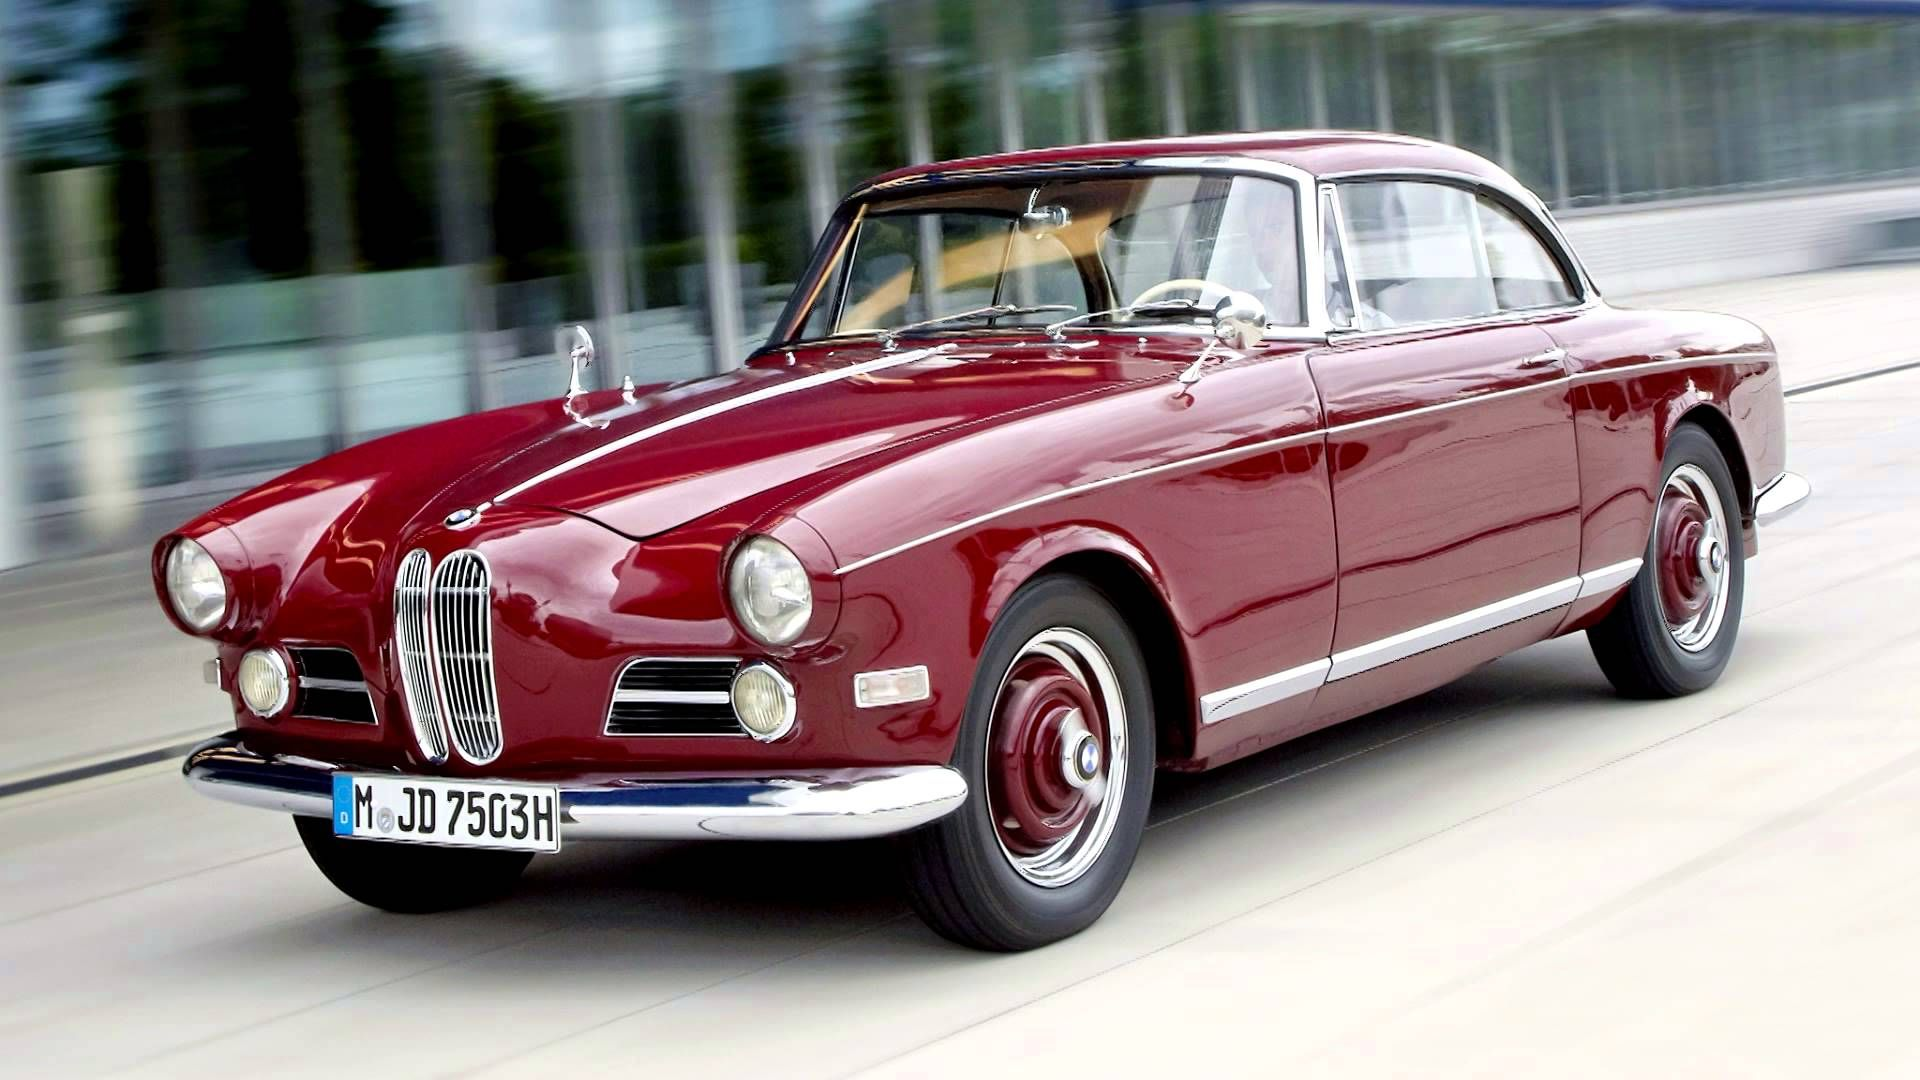 BMW 503 coupe   Favorite Machines   Pinterest   BMW and Cars